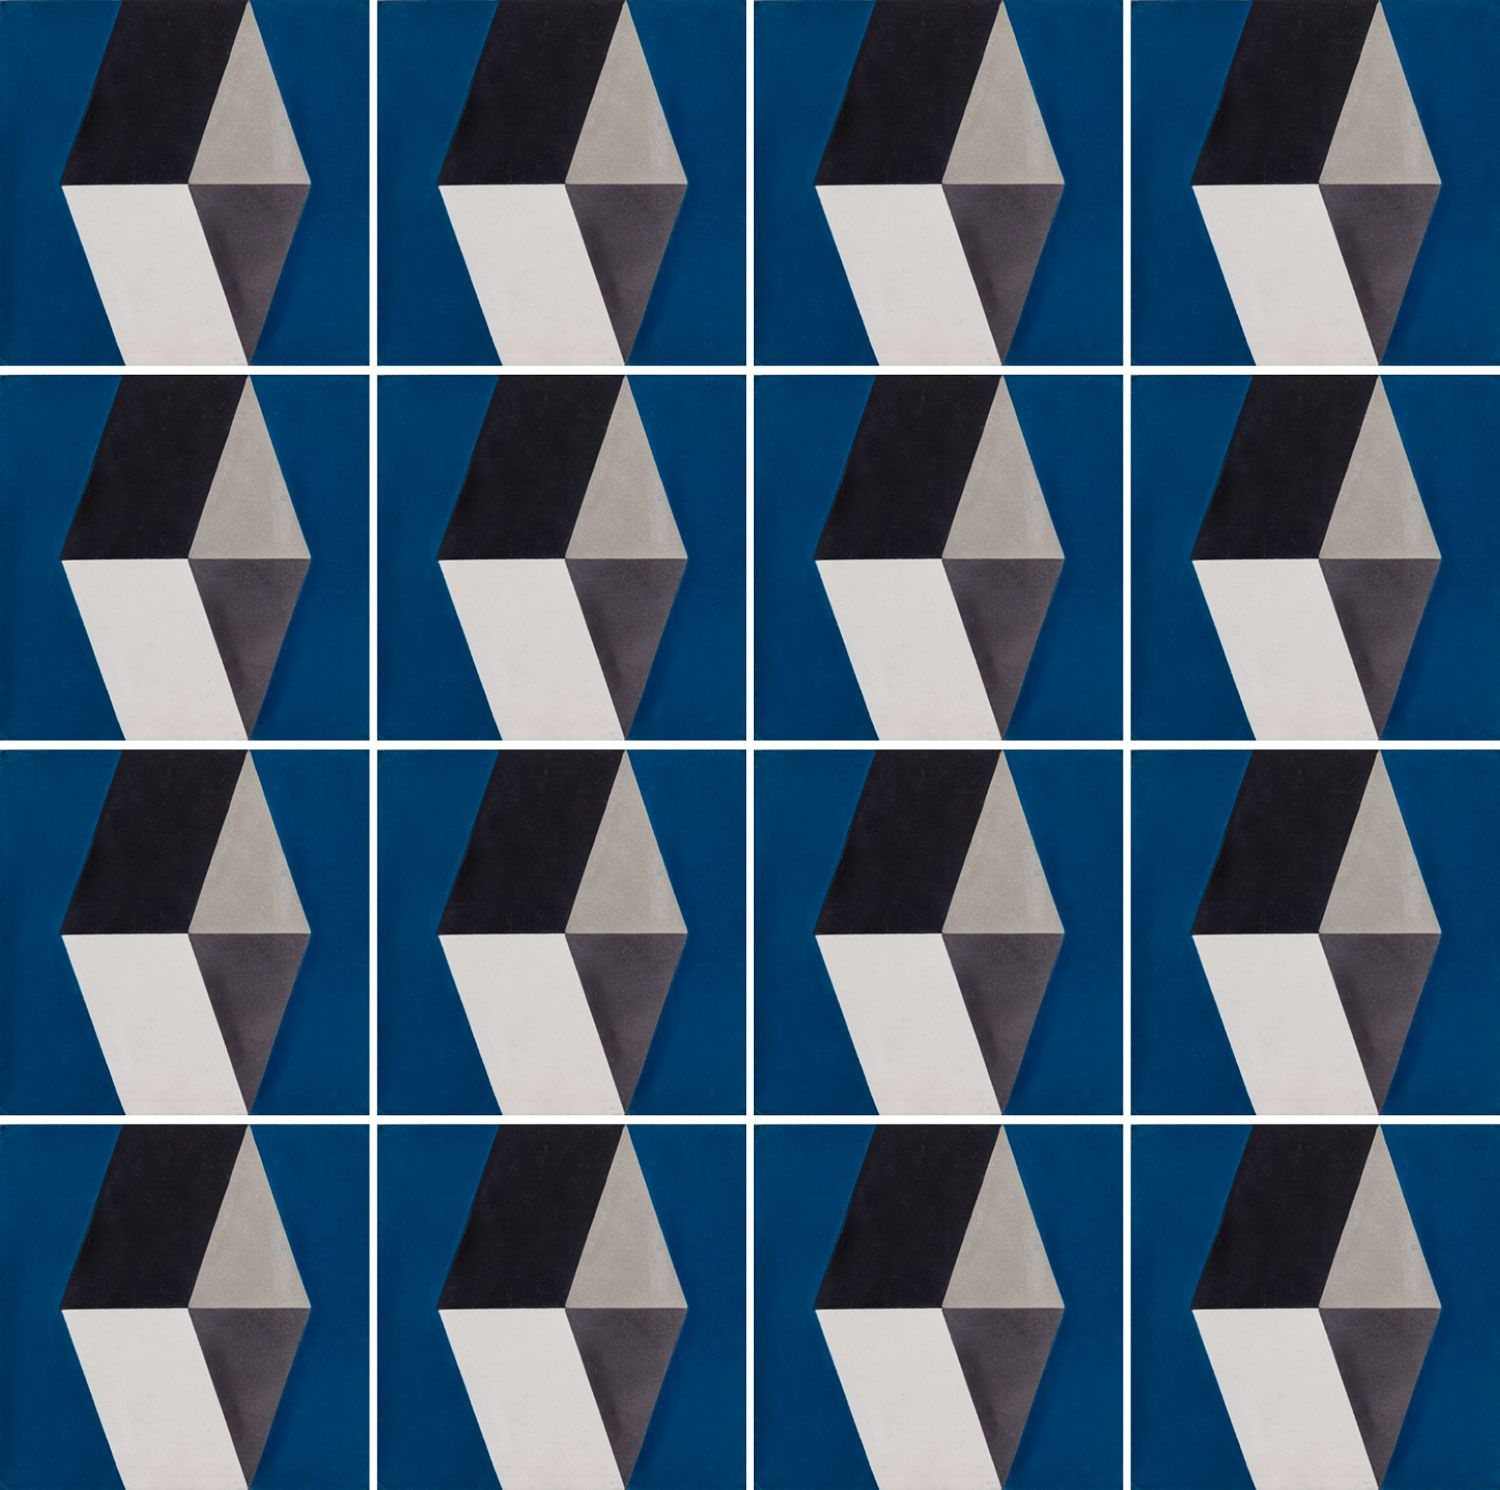 Self Expression Through Geometric Tile Geometric Tiles Square